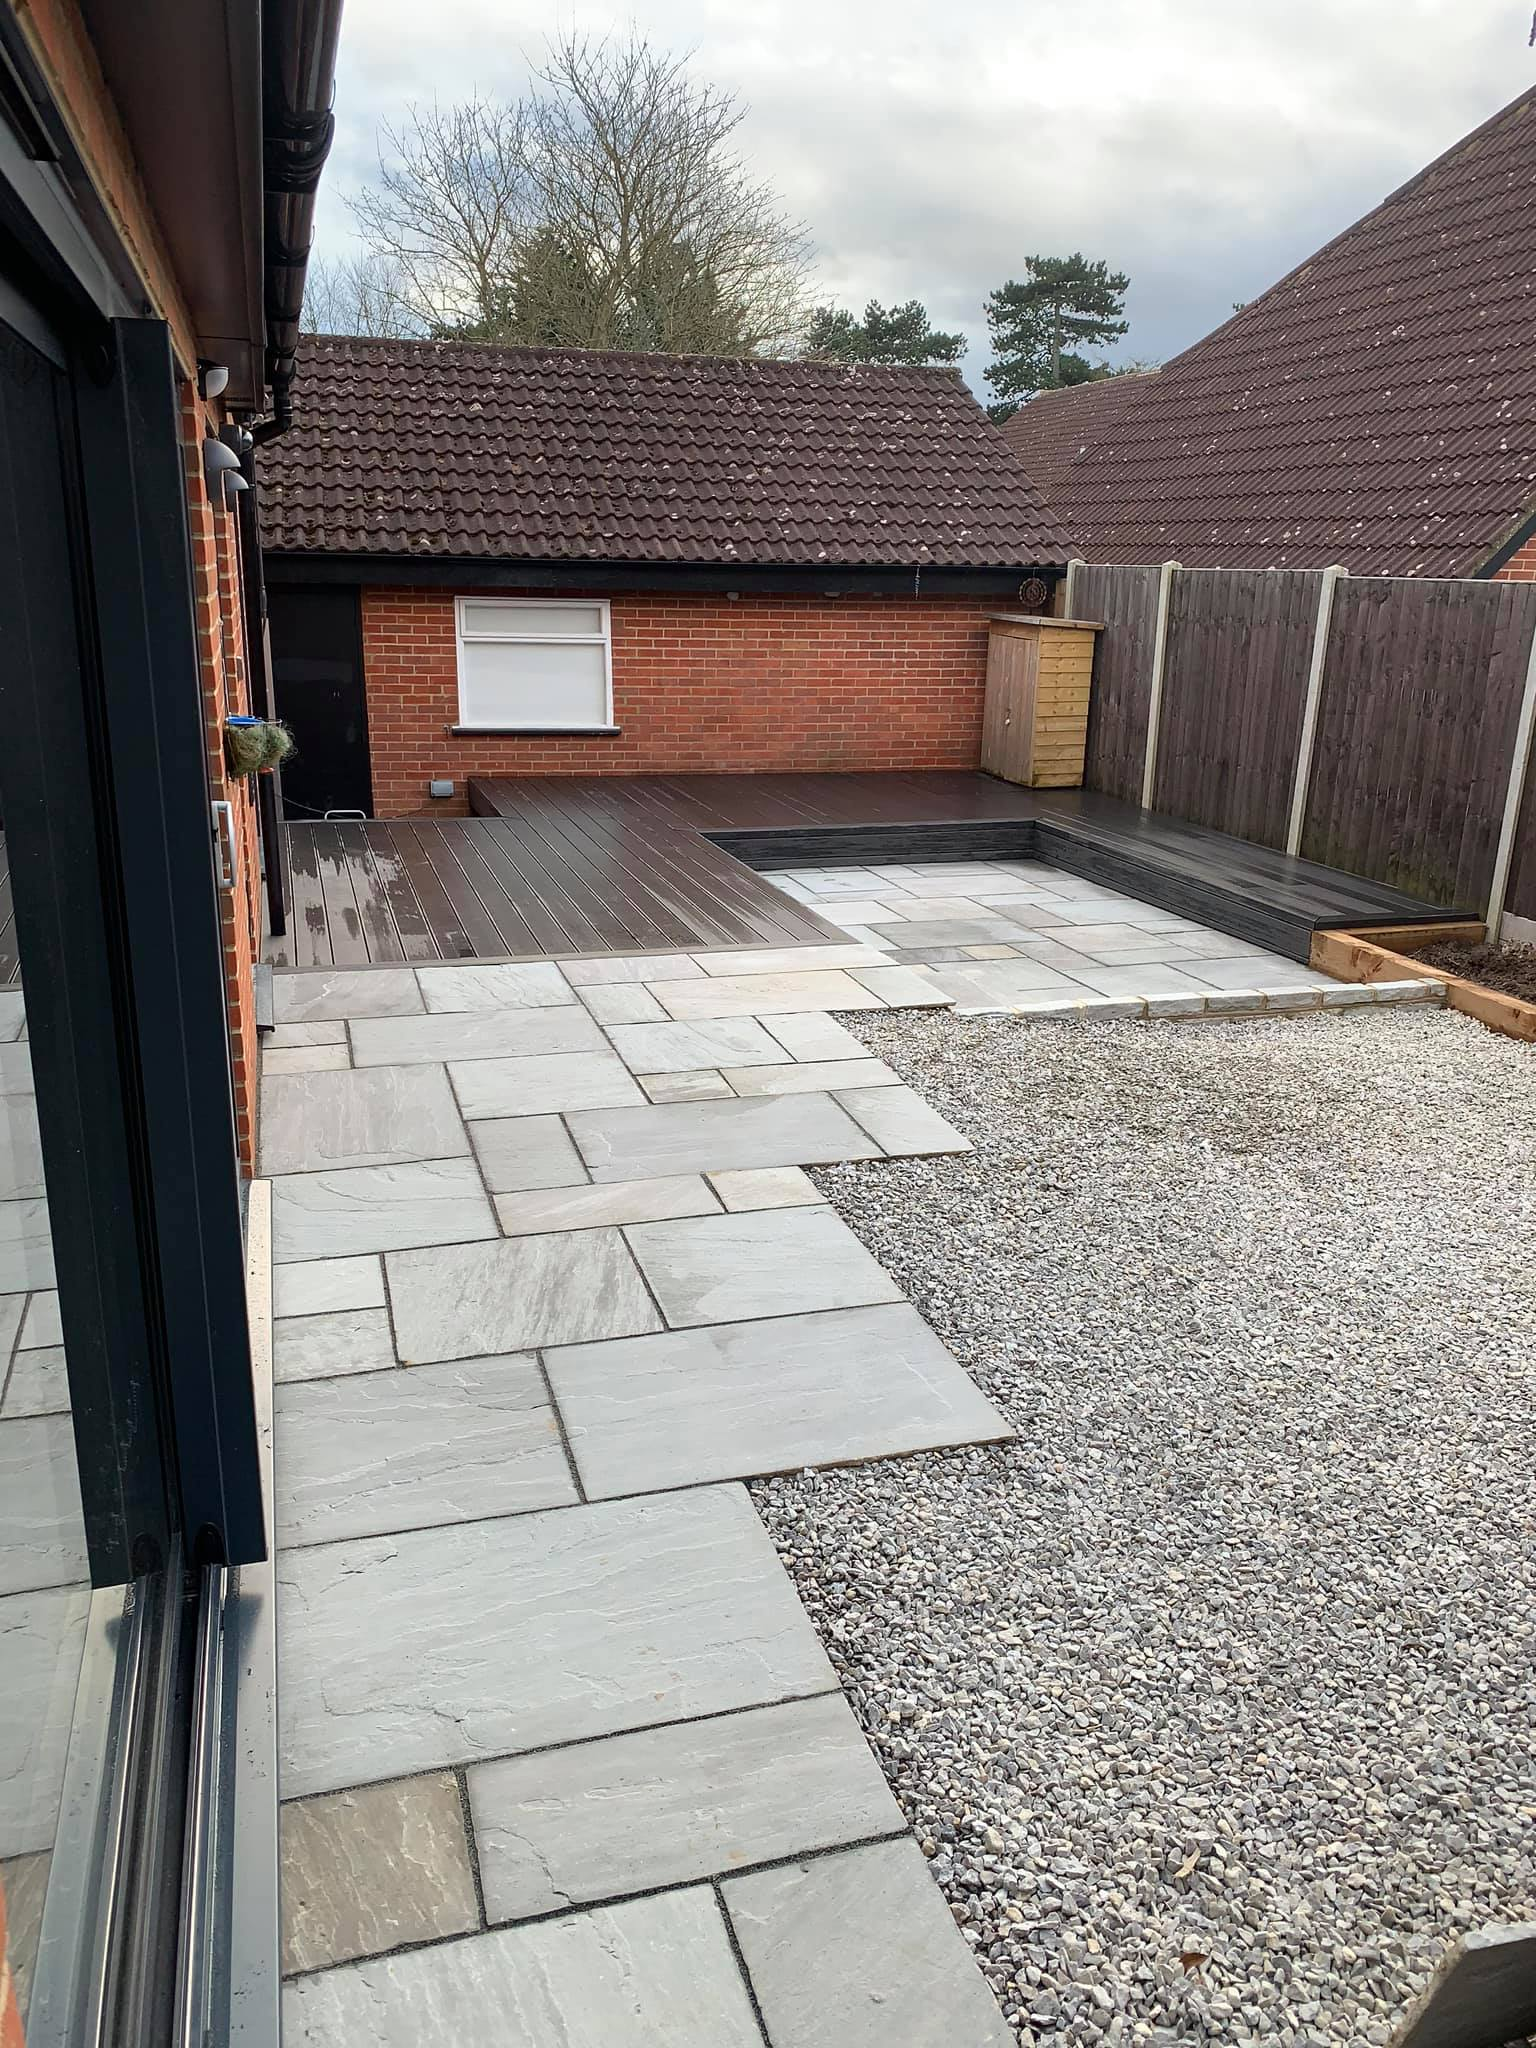 paved area with decking and gravel